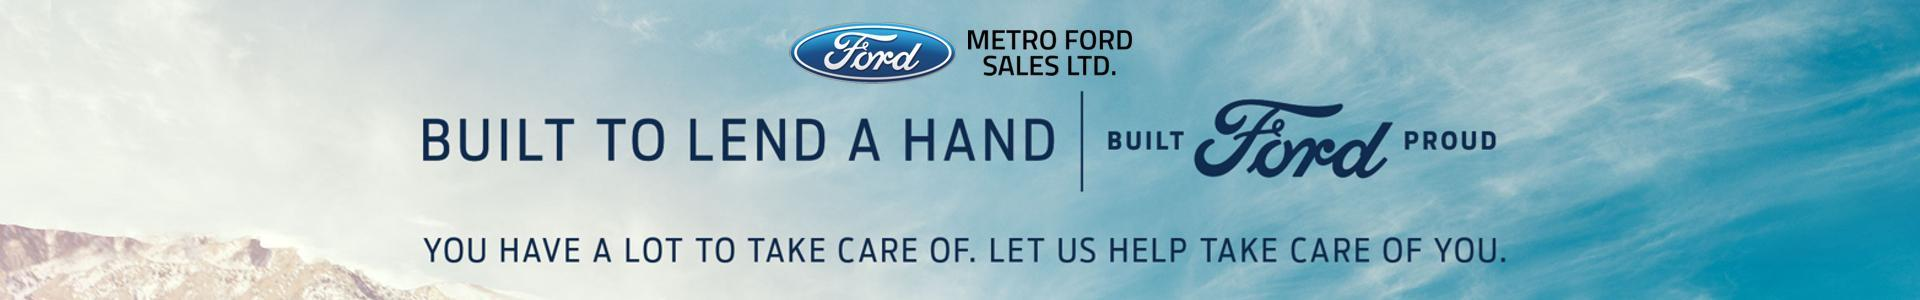 Metro Ford is here to Lend a Hand